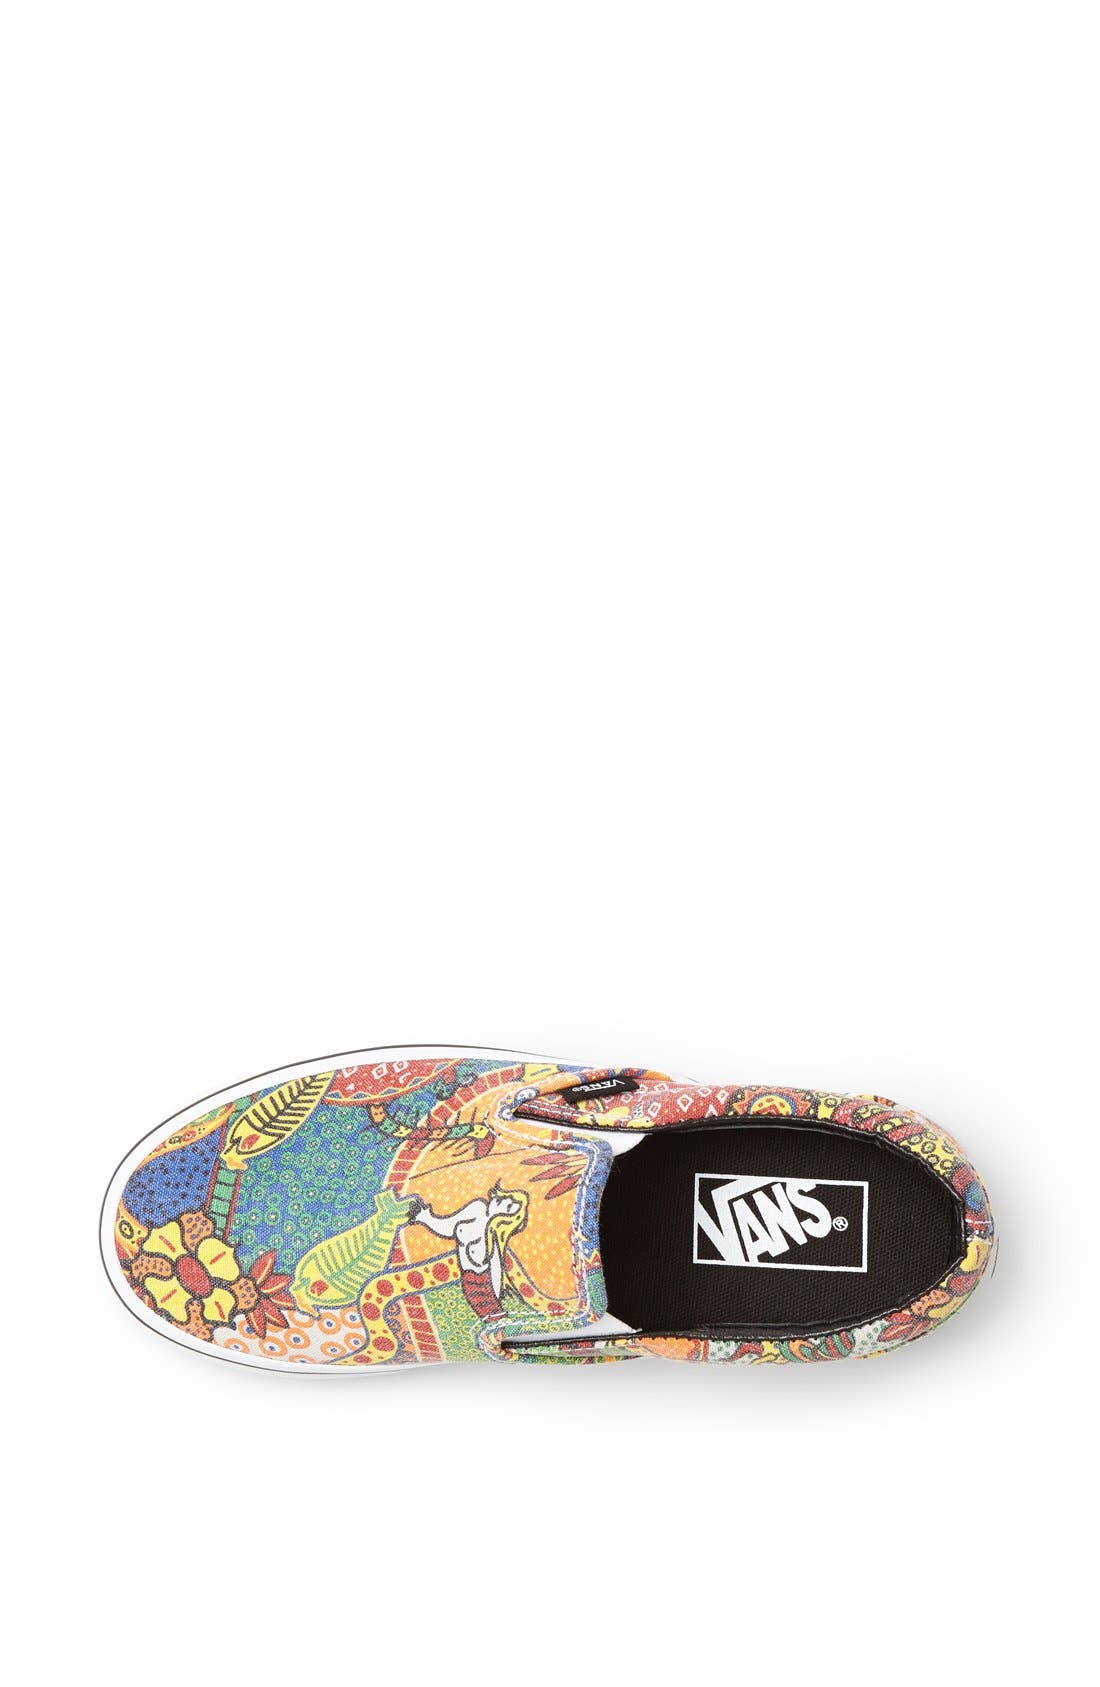 Alternate Image 3  - Vans 'Van Doren - Classic' Slip-On Sneaker (Women)